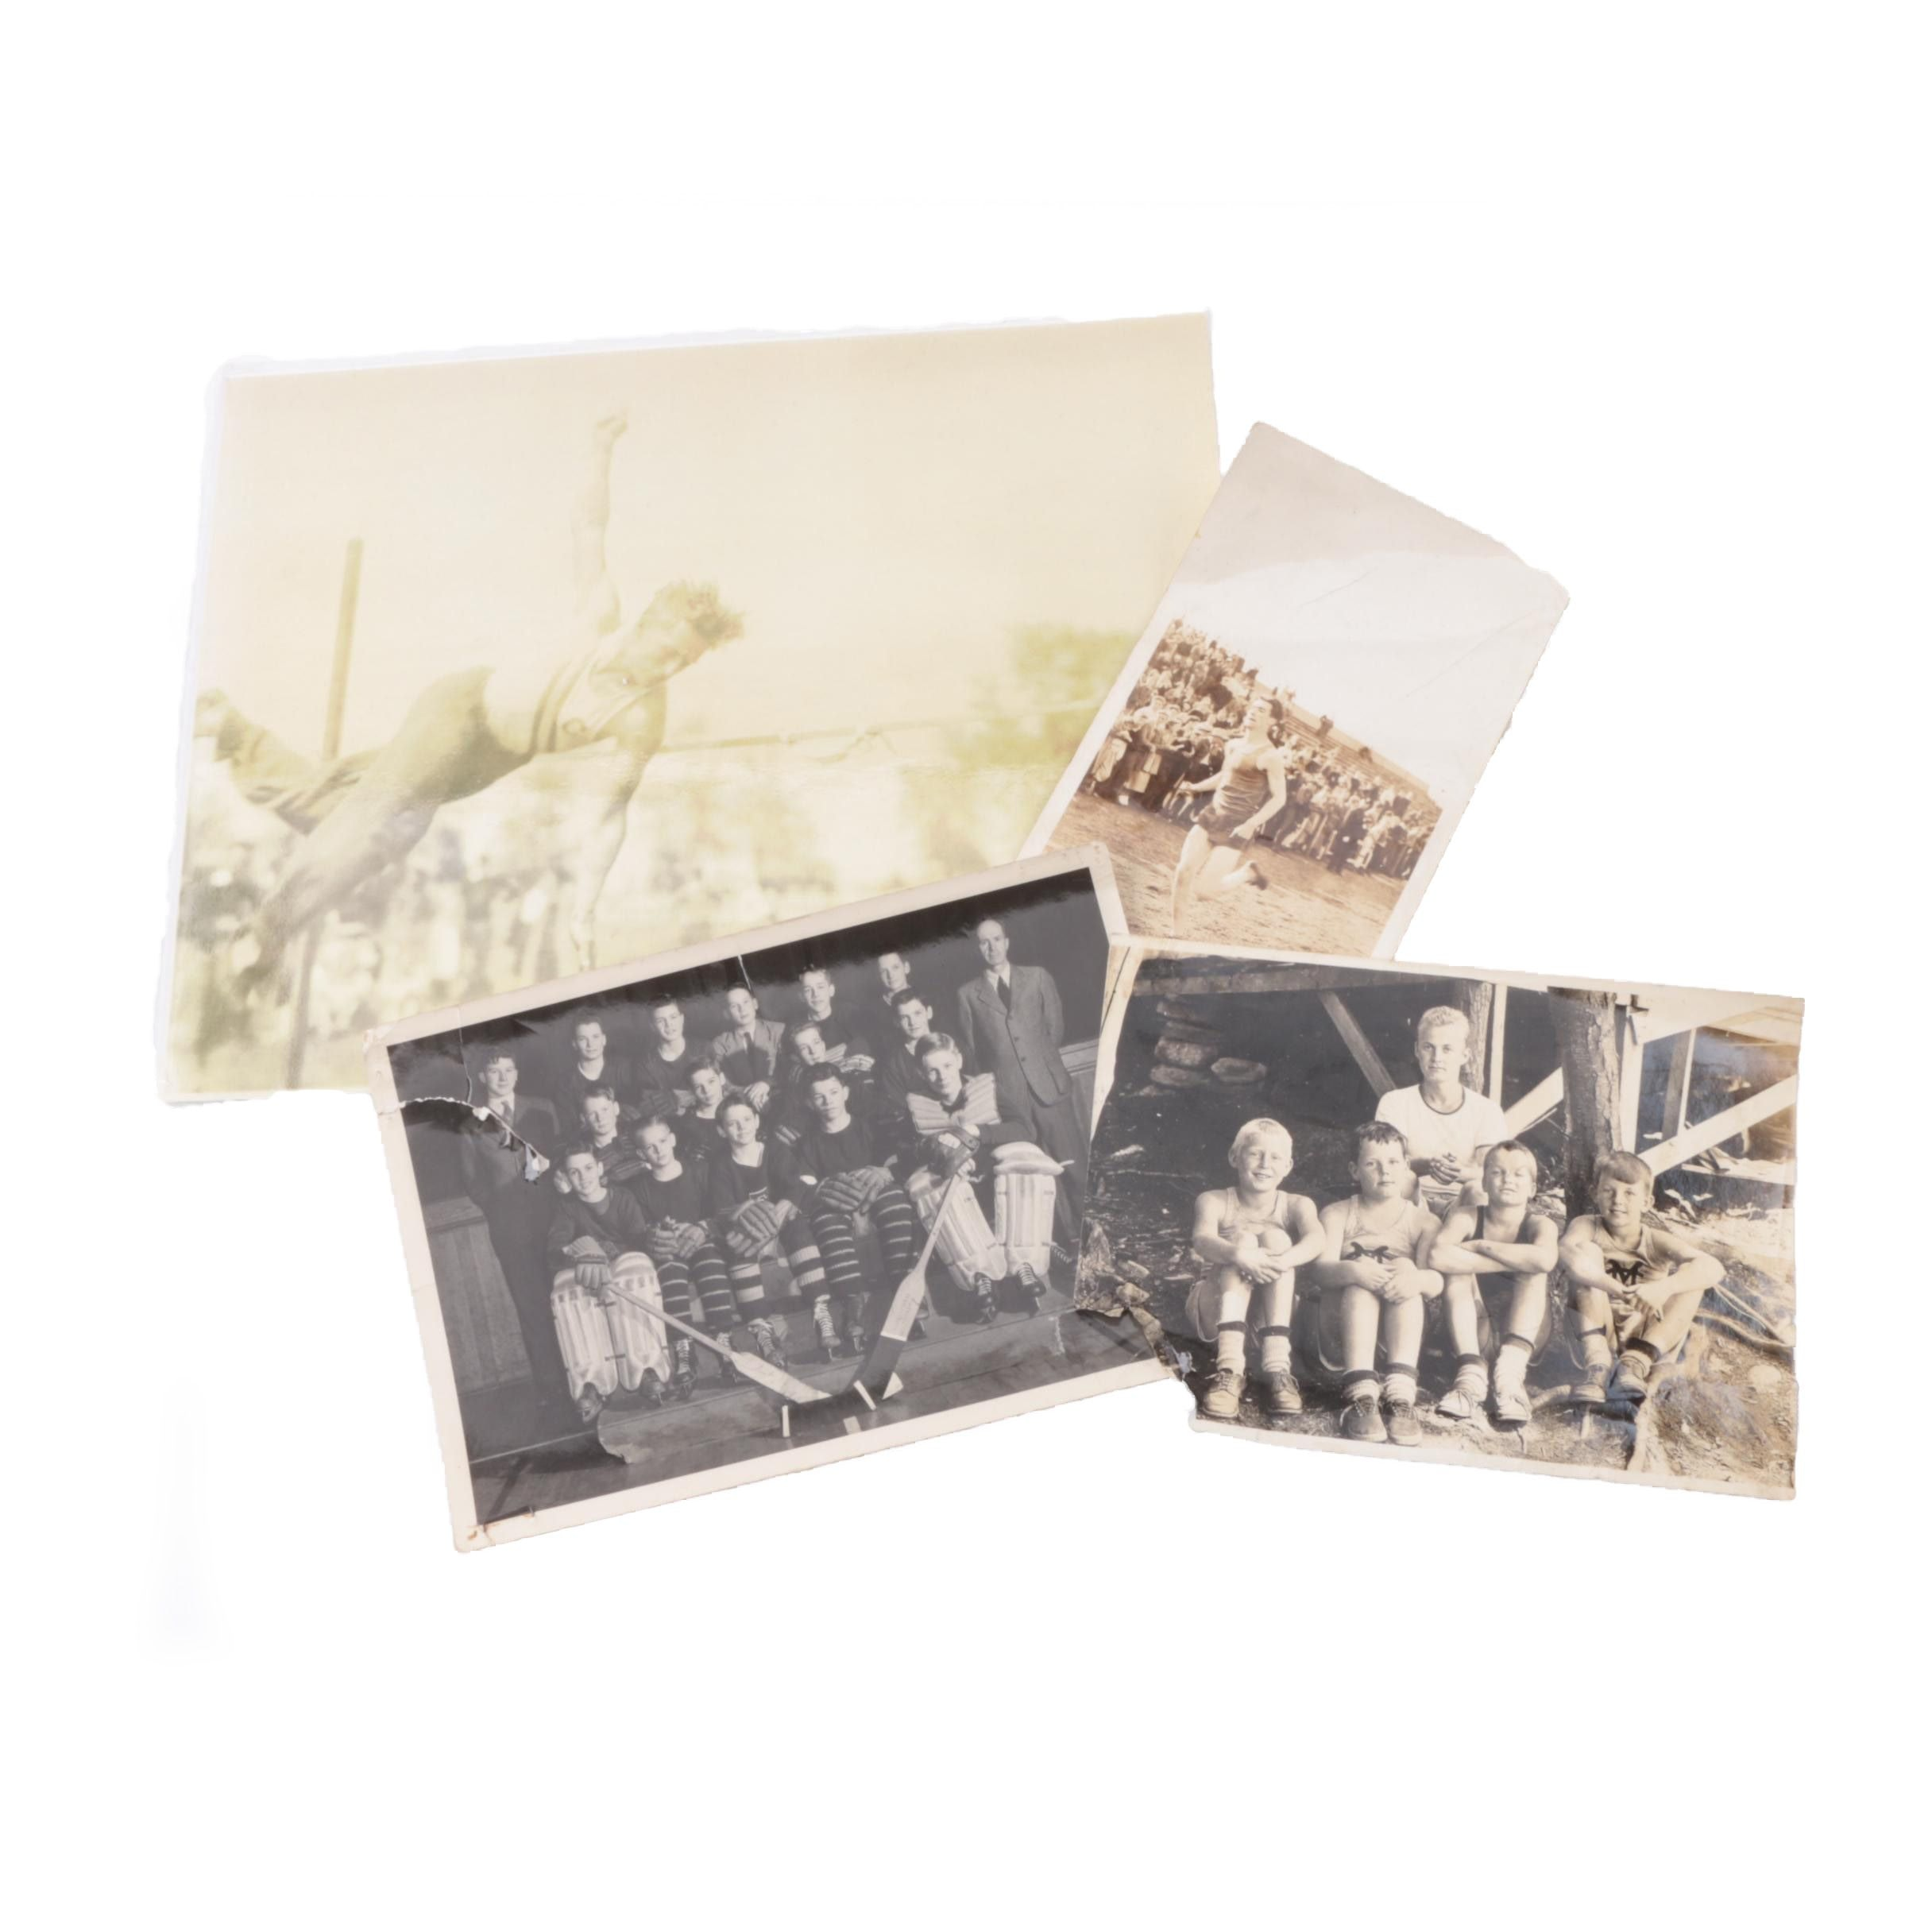 Vintage Gelatin Silver Photographs of Athletes and Others